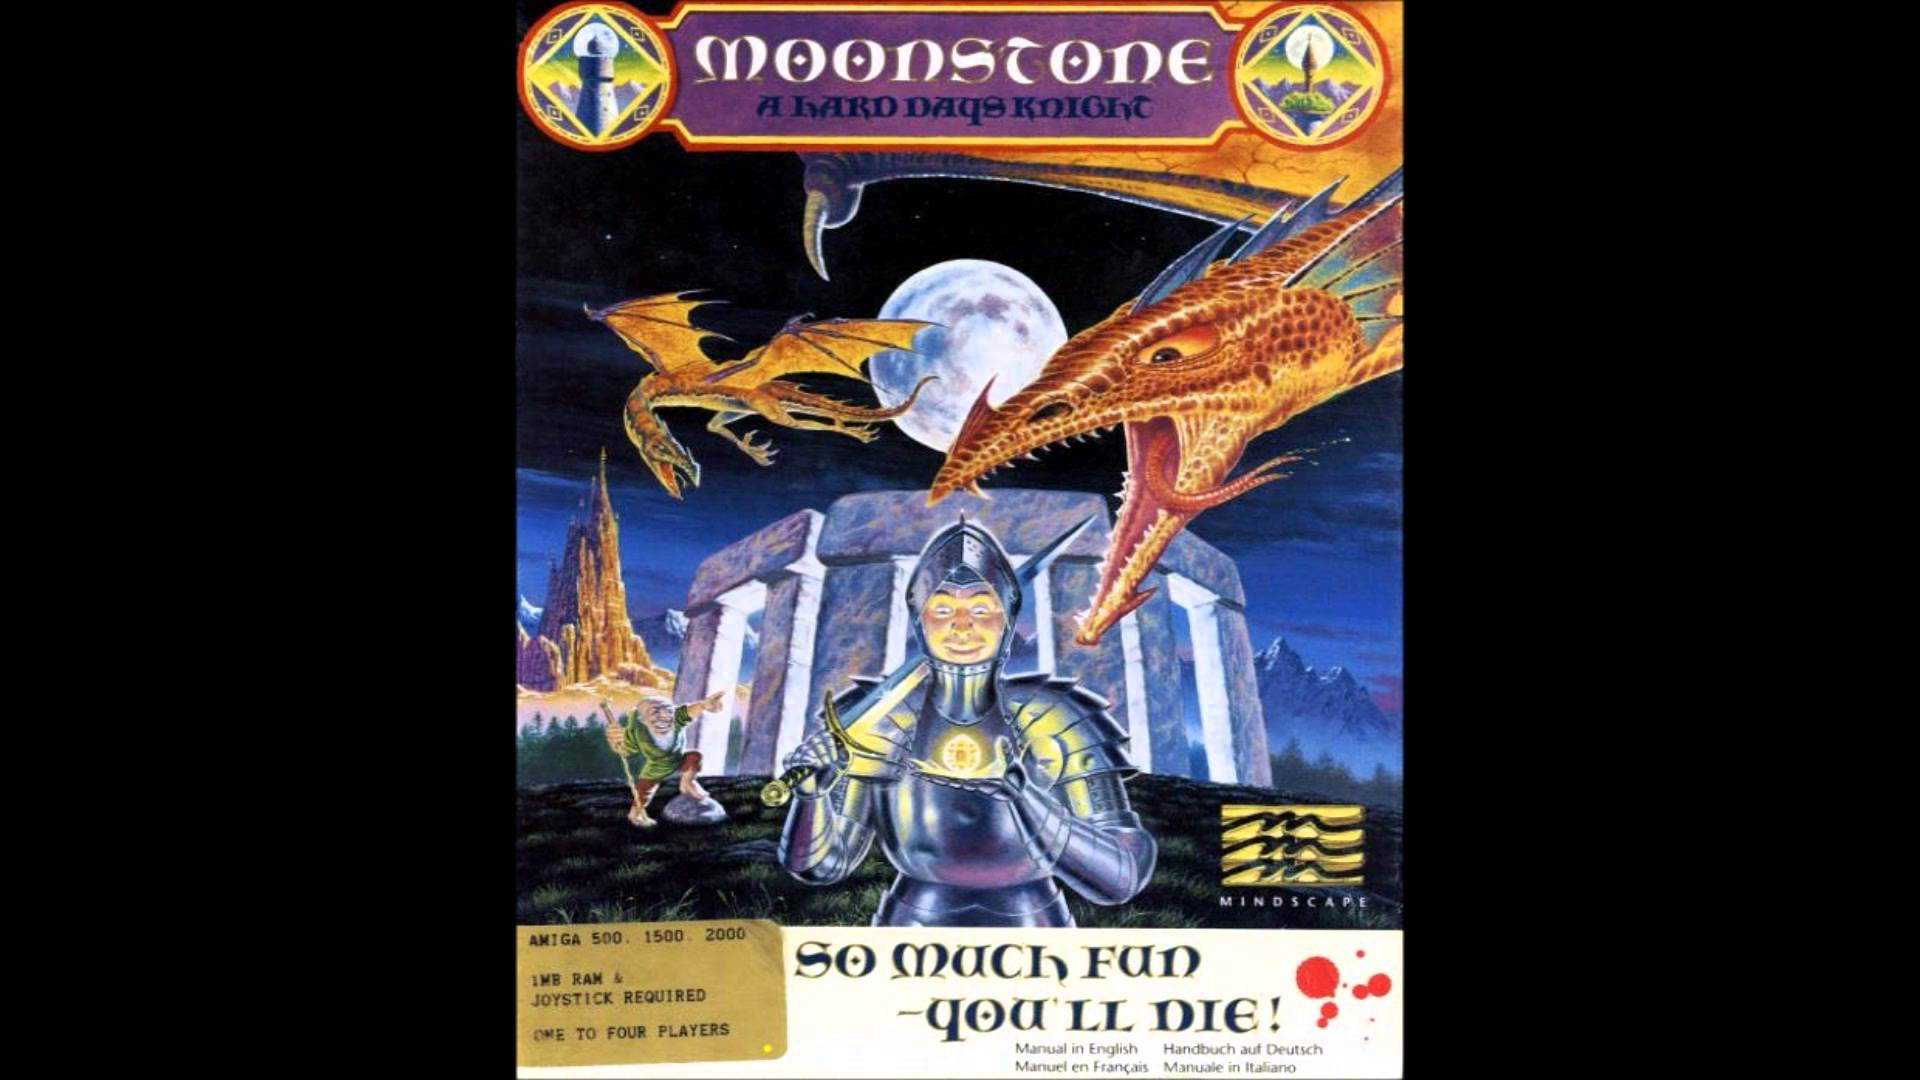 Moonstone - A Hard Days Knight_Disk1